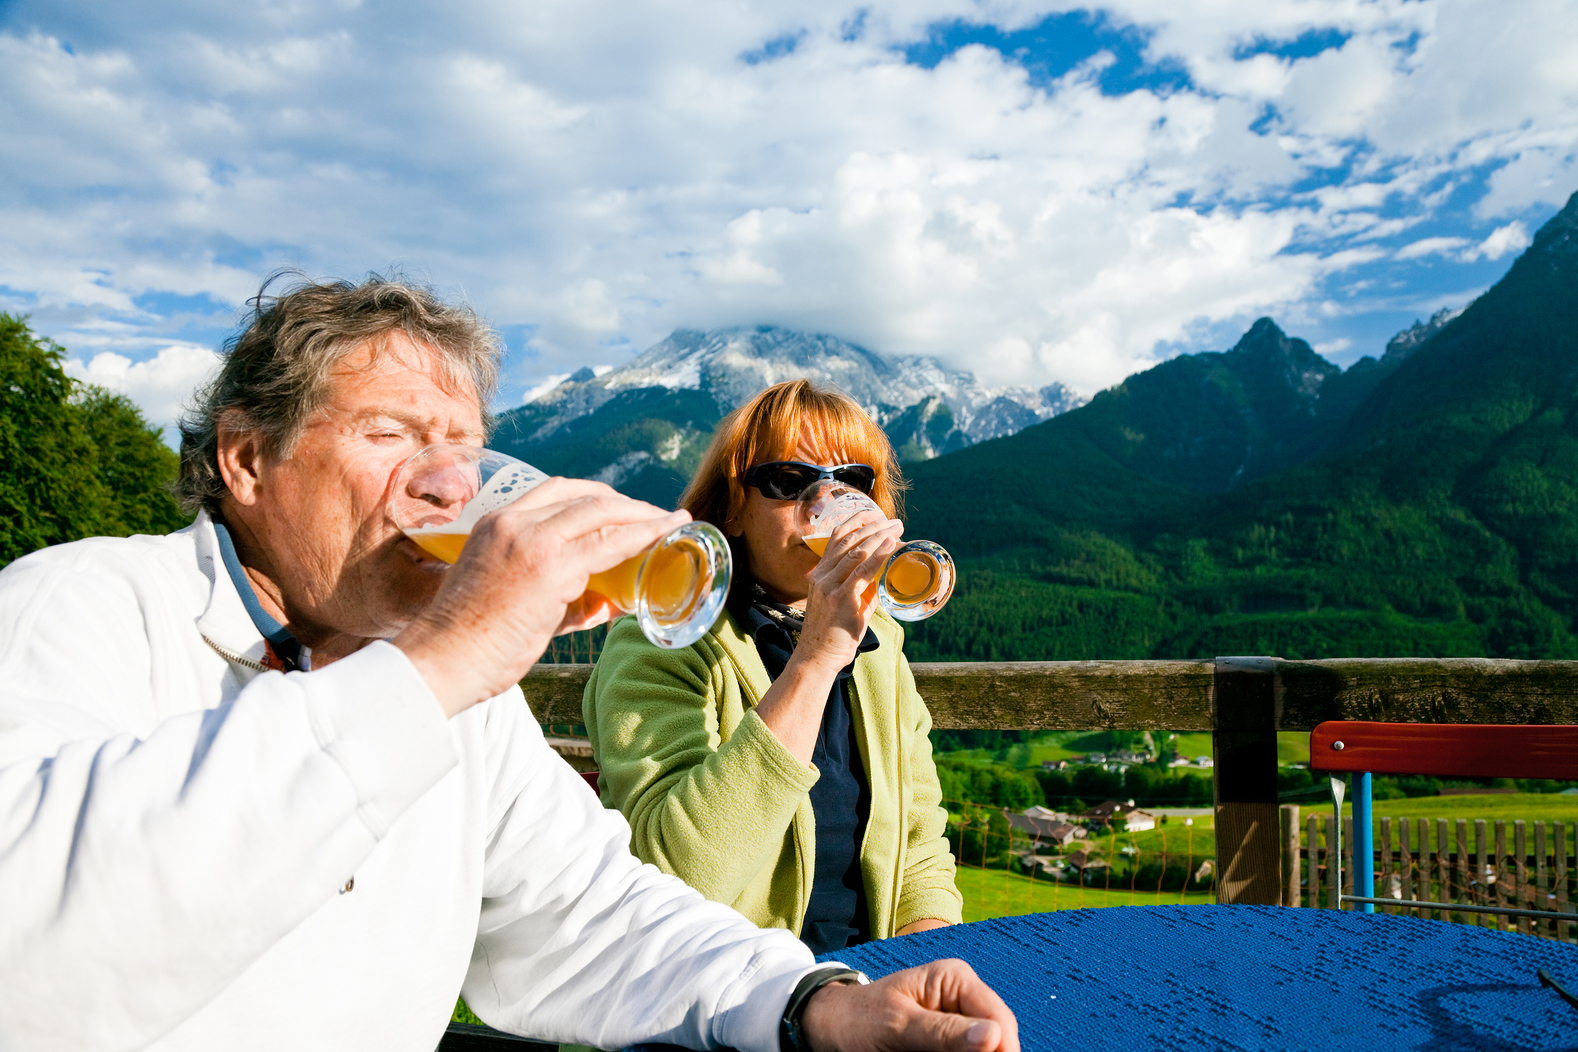 If you're a beer lover, you may want to consider retiring in one of these brewery-rich areas.